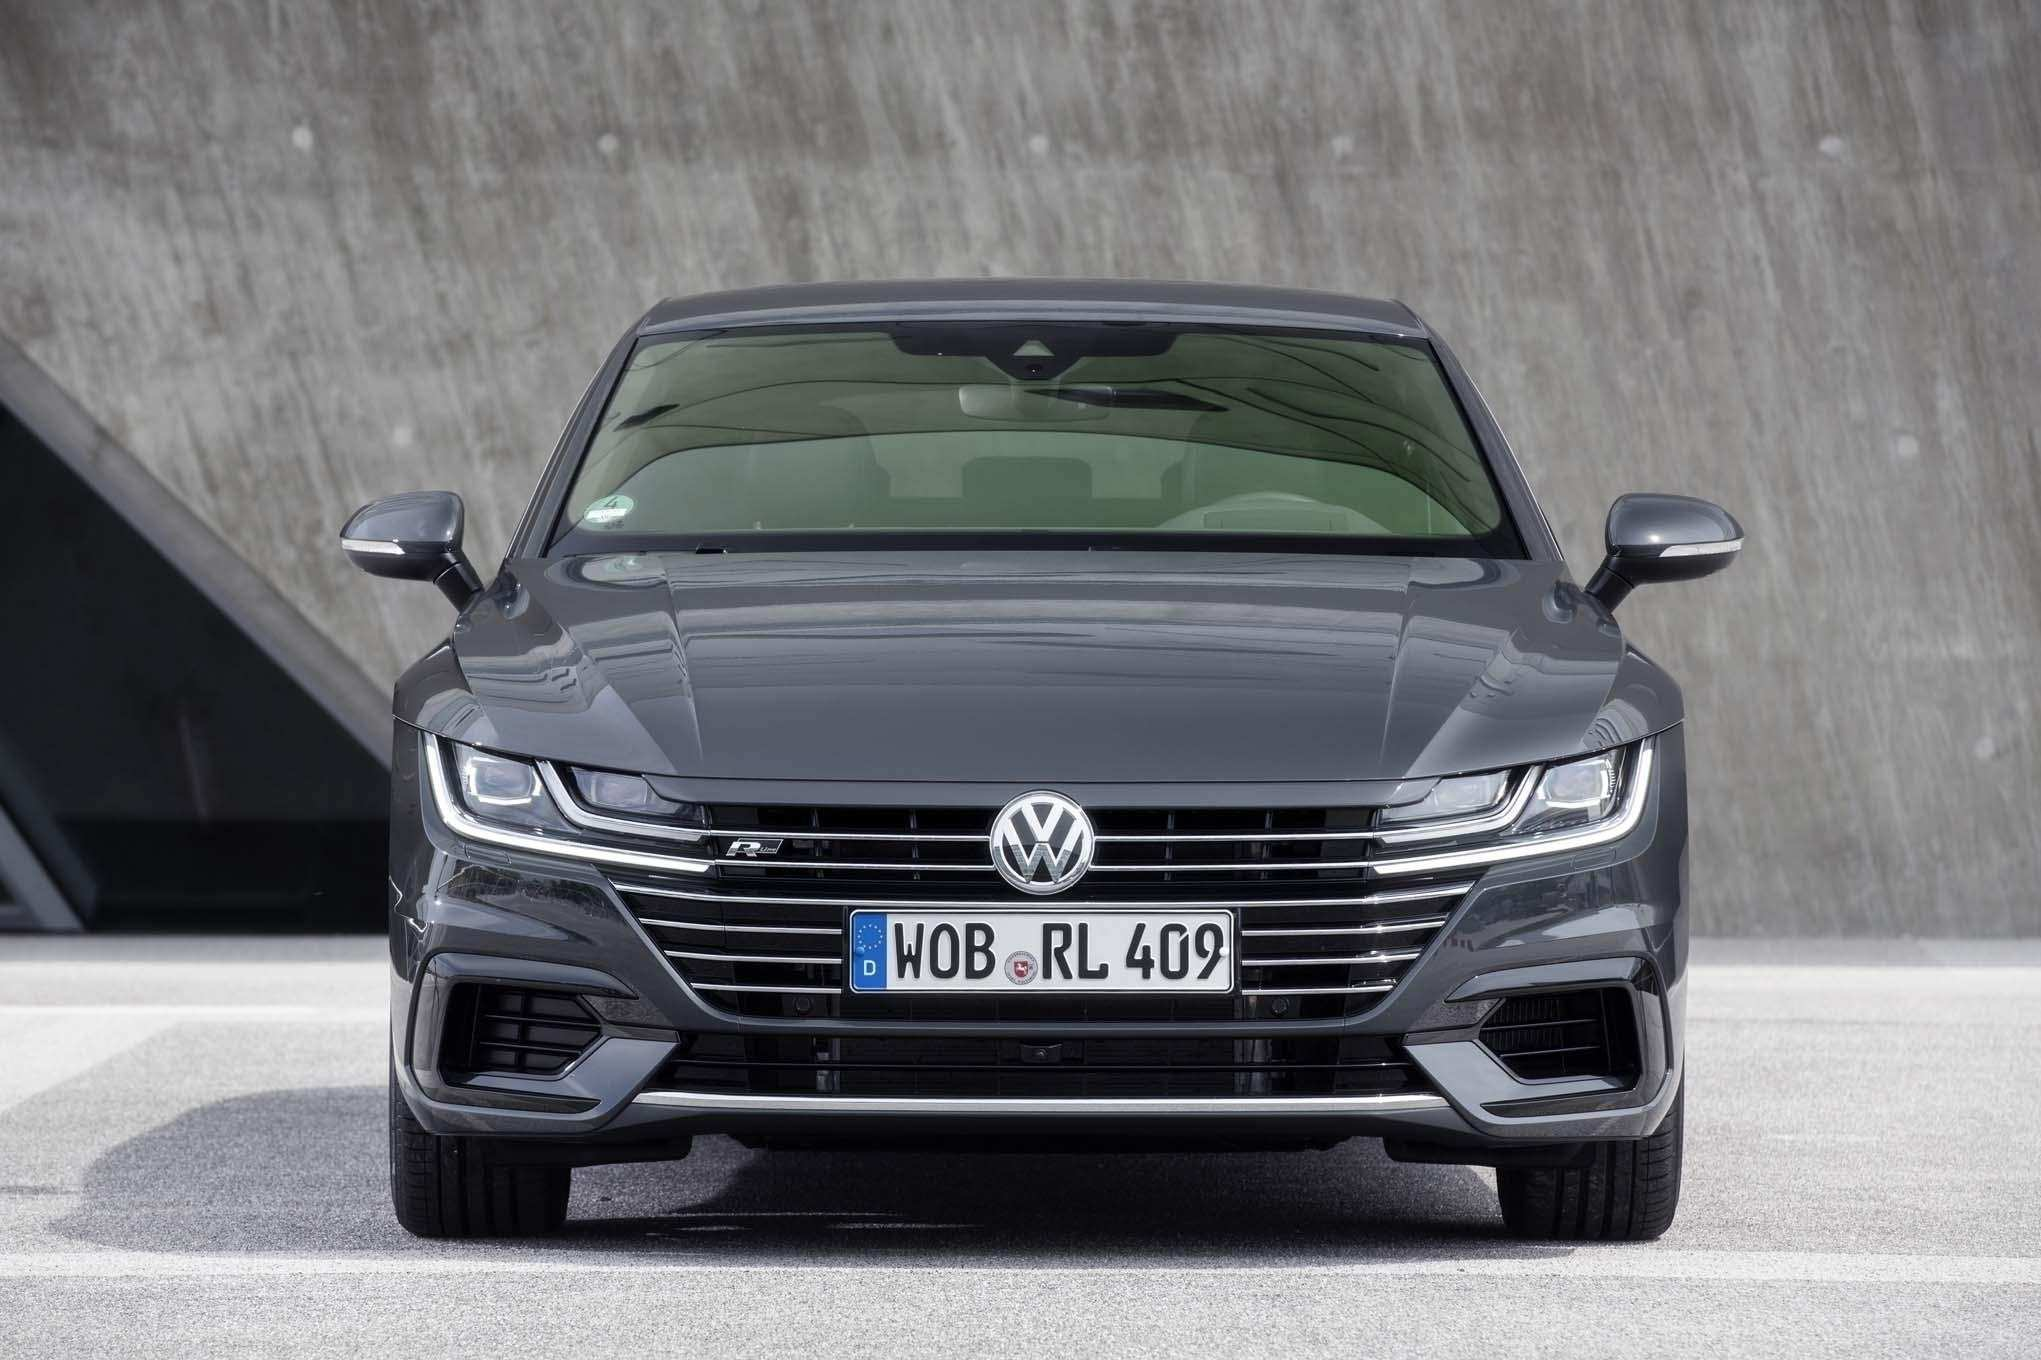 85 Gallery of Next Generation 2020 Vw Cc Overview with Next Generation 2020 Vw Cc